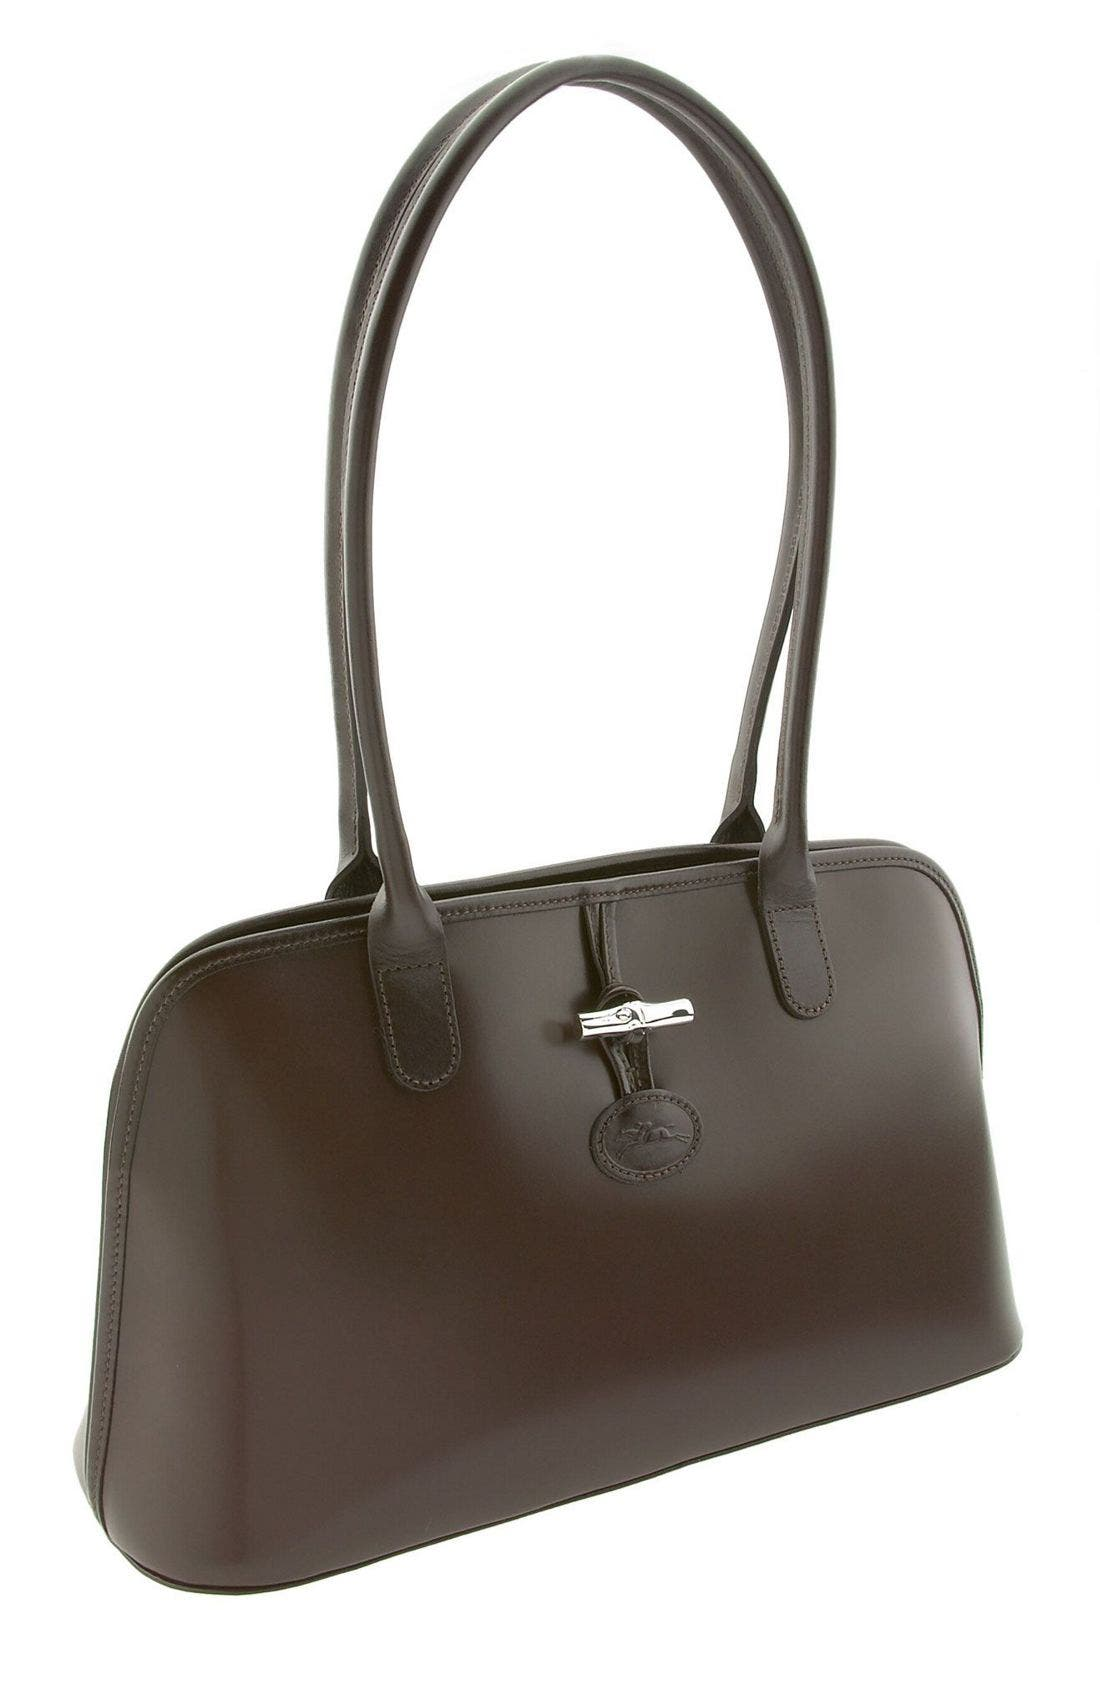 Alternate Image 1 Selected - Longchamp 'Roseau' Dome Satchel